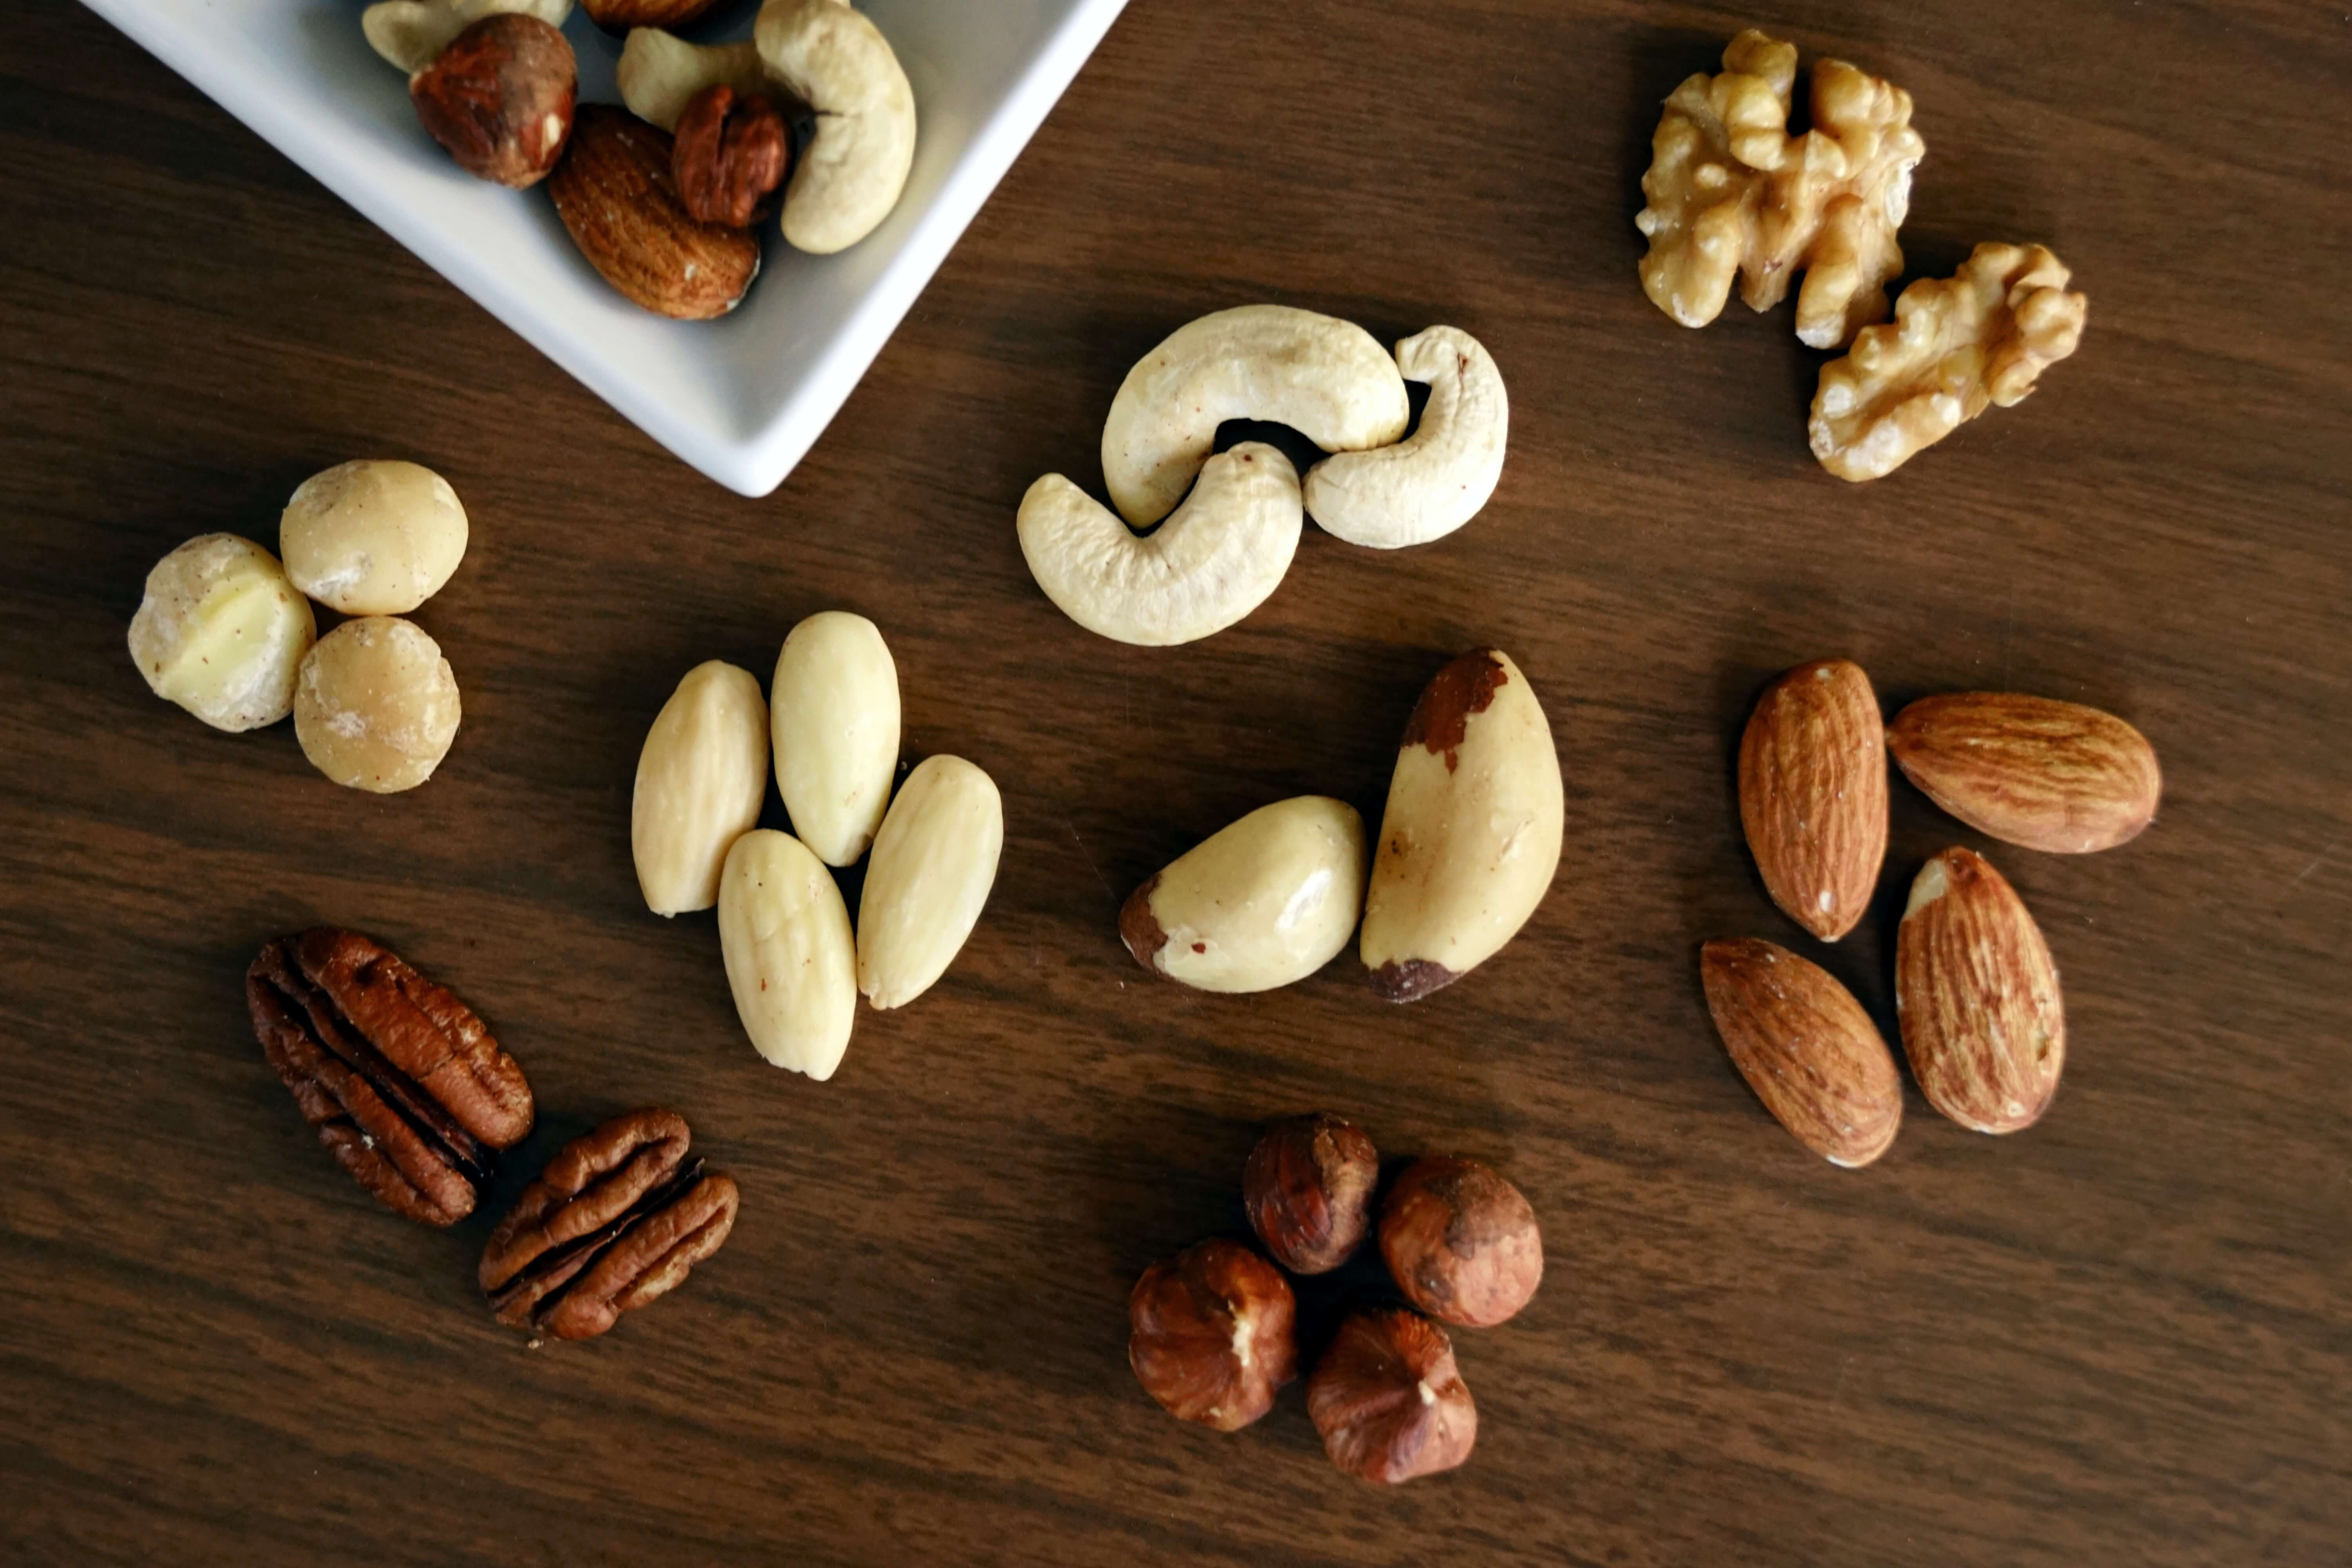 Include Healthy Snacks in Your List